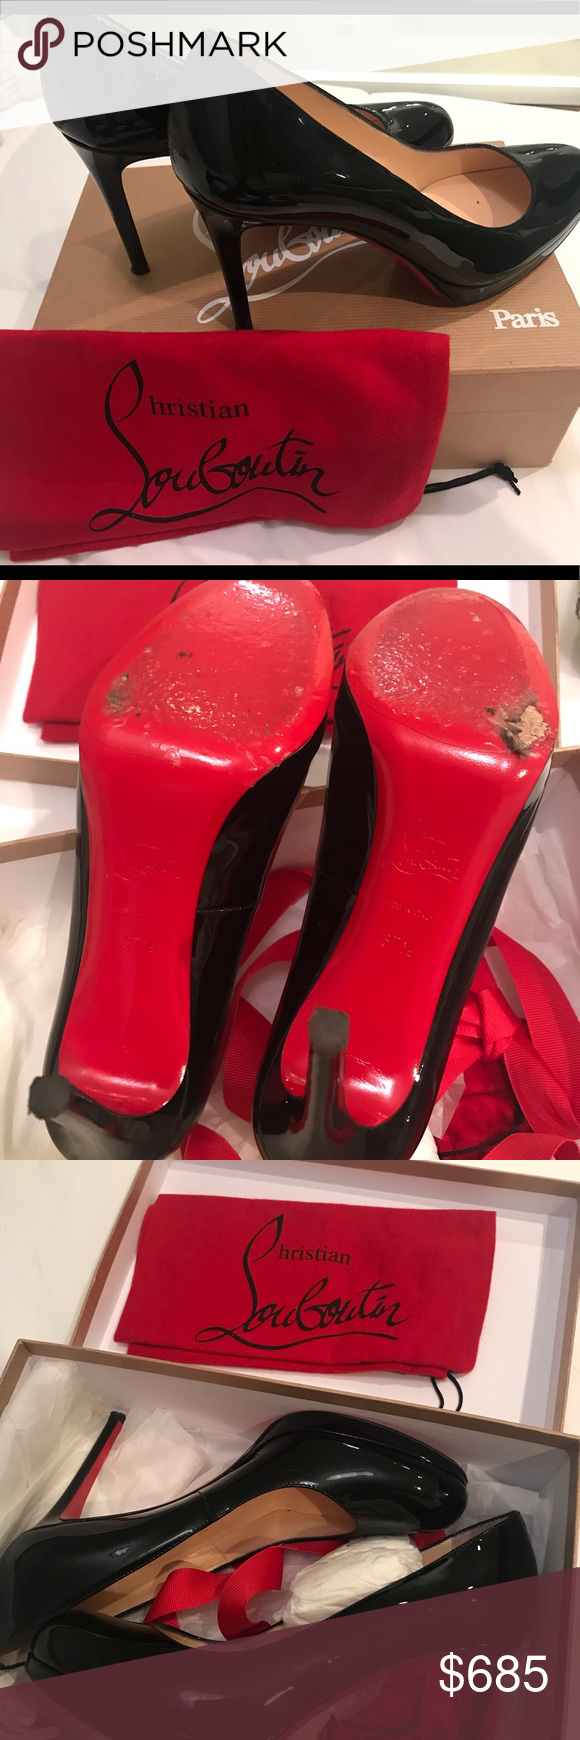 low priced f692b fa577 Christian Louboutin Simple Pump 100 Patent Calf Christian ...